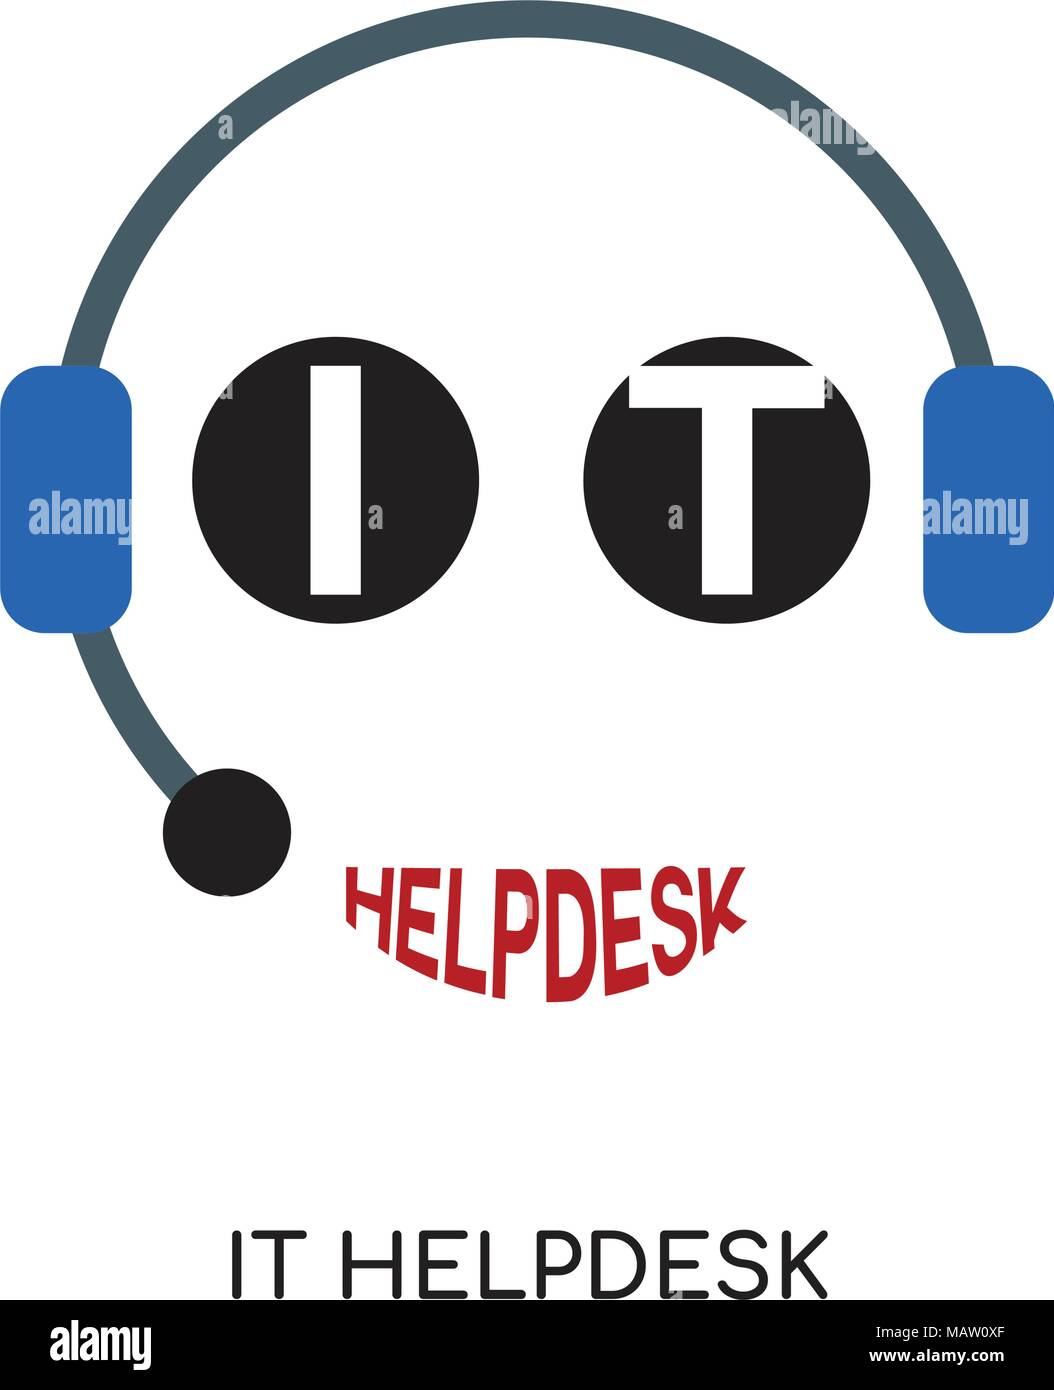 It Helpdesk Logo Isolated On White Background For Your Web Mobile And App Design Stock Vector Image Art Alamy